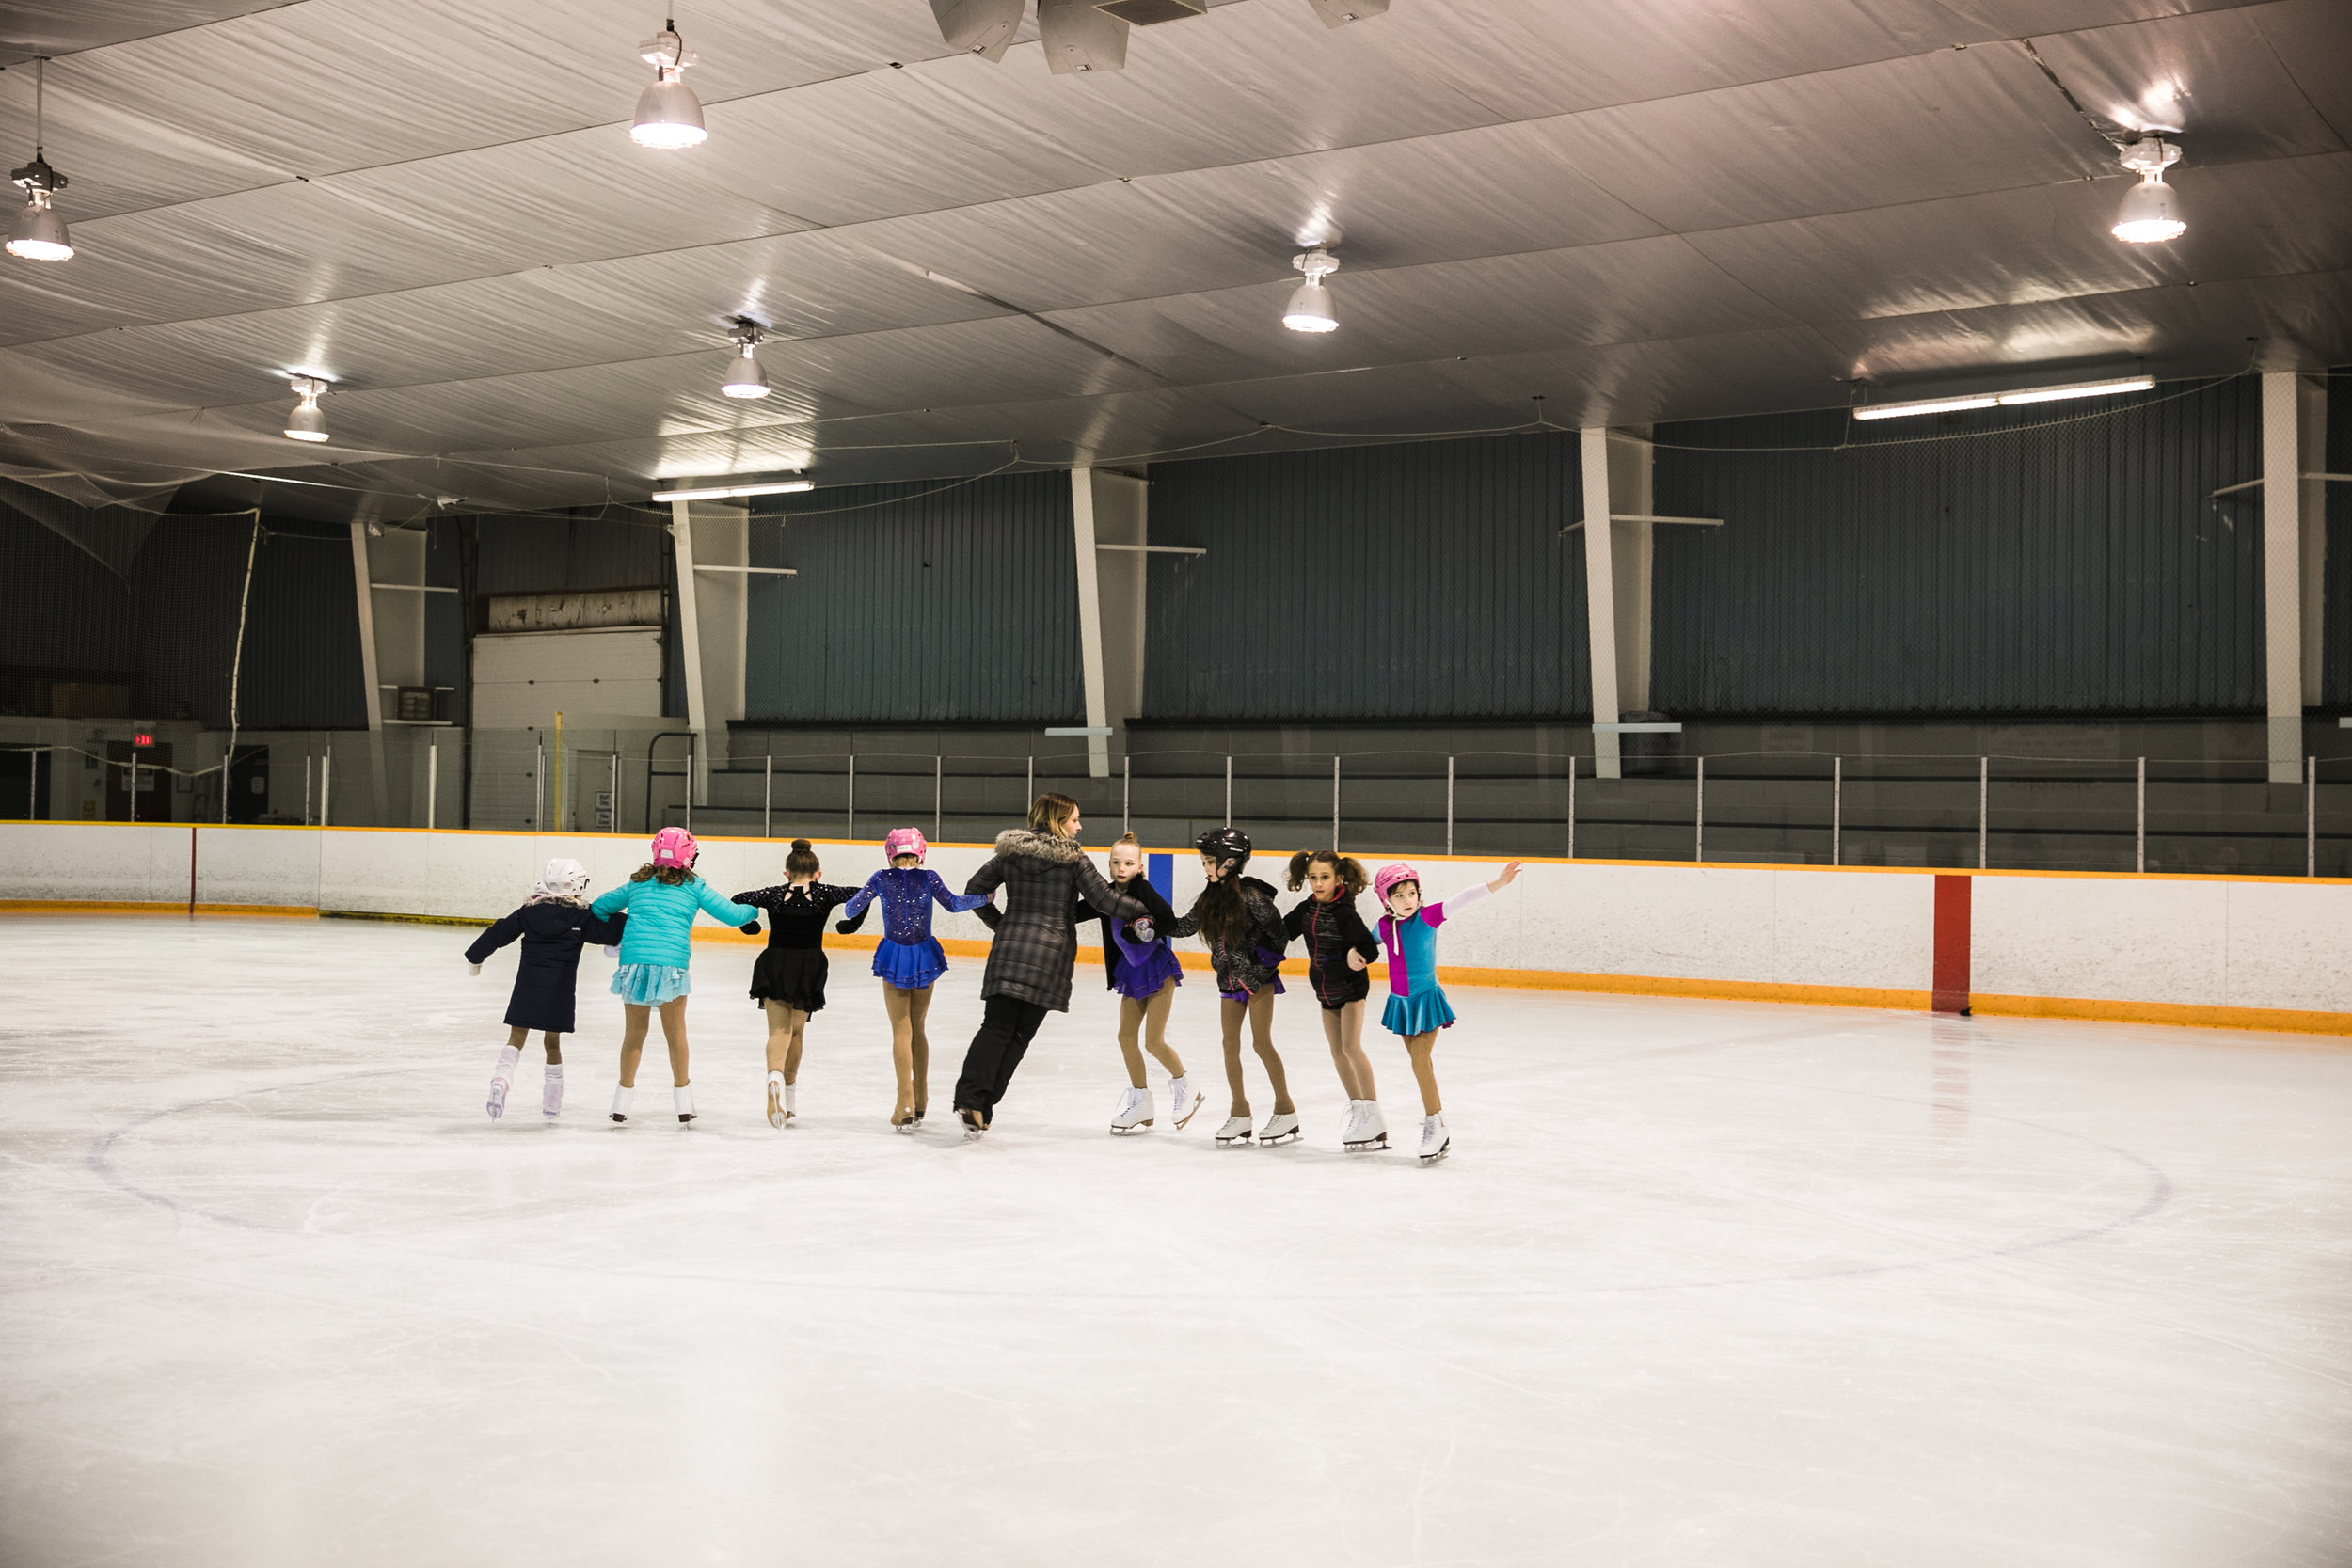 CrystalJessupSkating (1 of 1).jpg